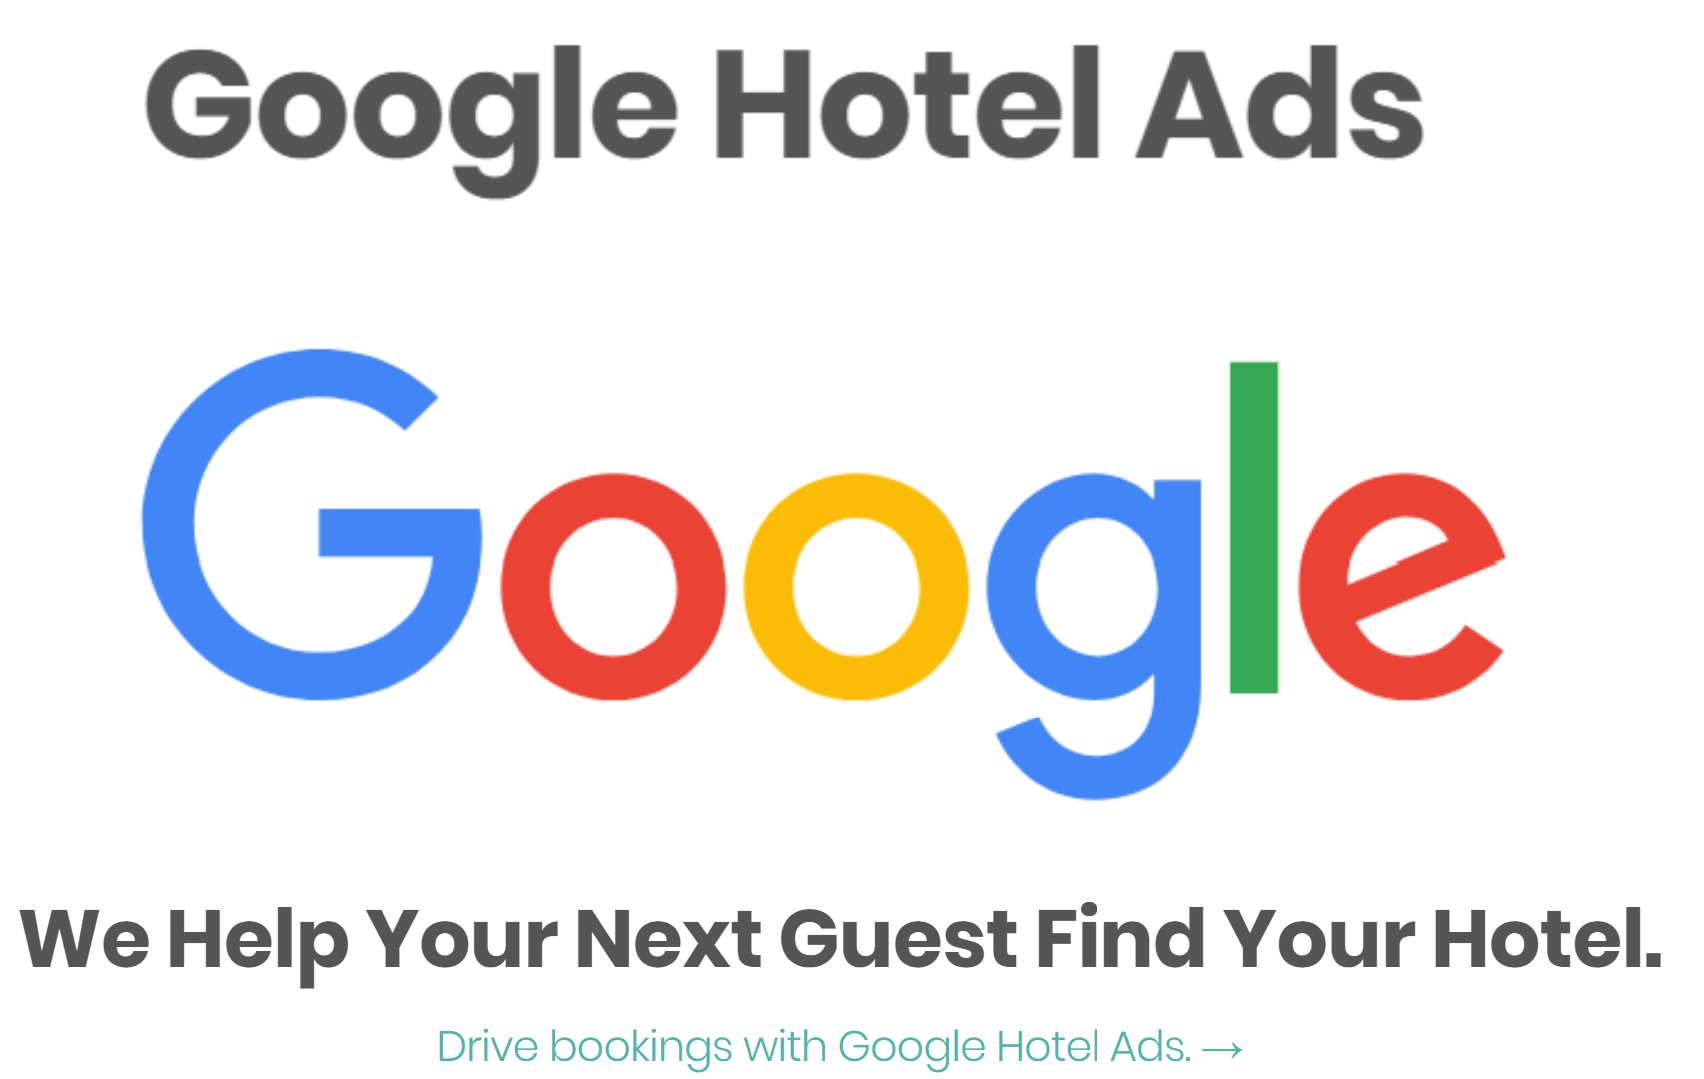 Google Hotel Ads - Drive Bookings with Ads for Your Hotel Official Premium PartnersGoogle Hotel Ads - Drive Bookings with Ads for Your Hotel